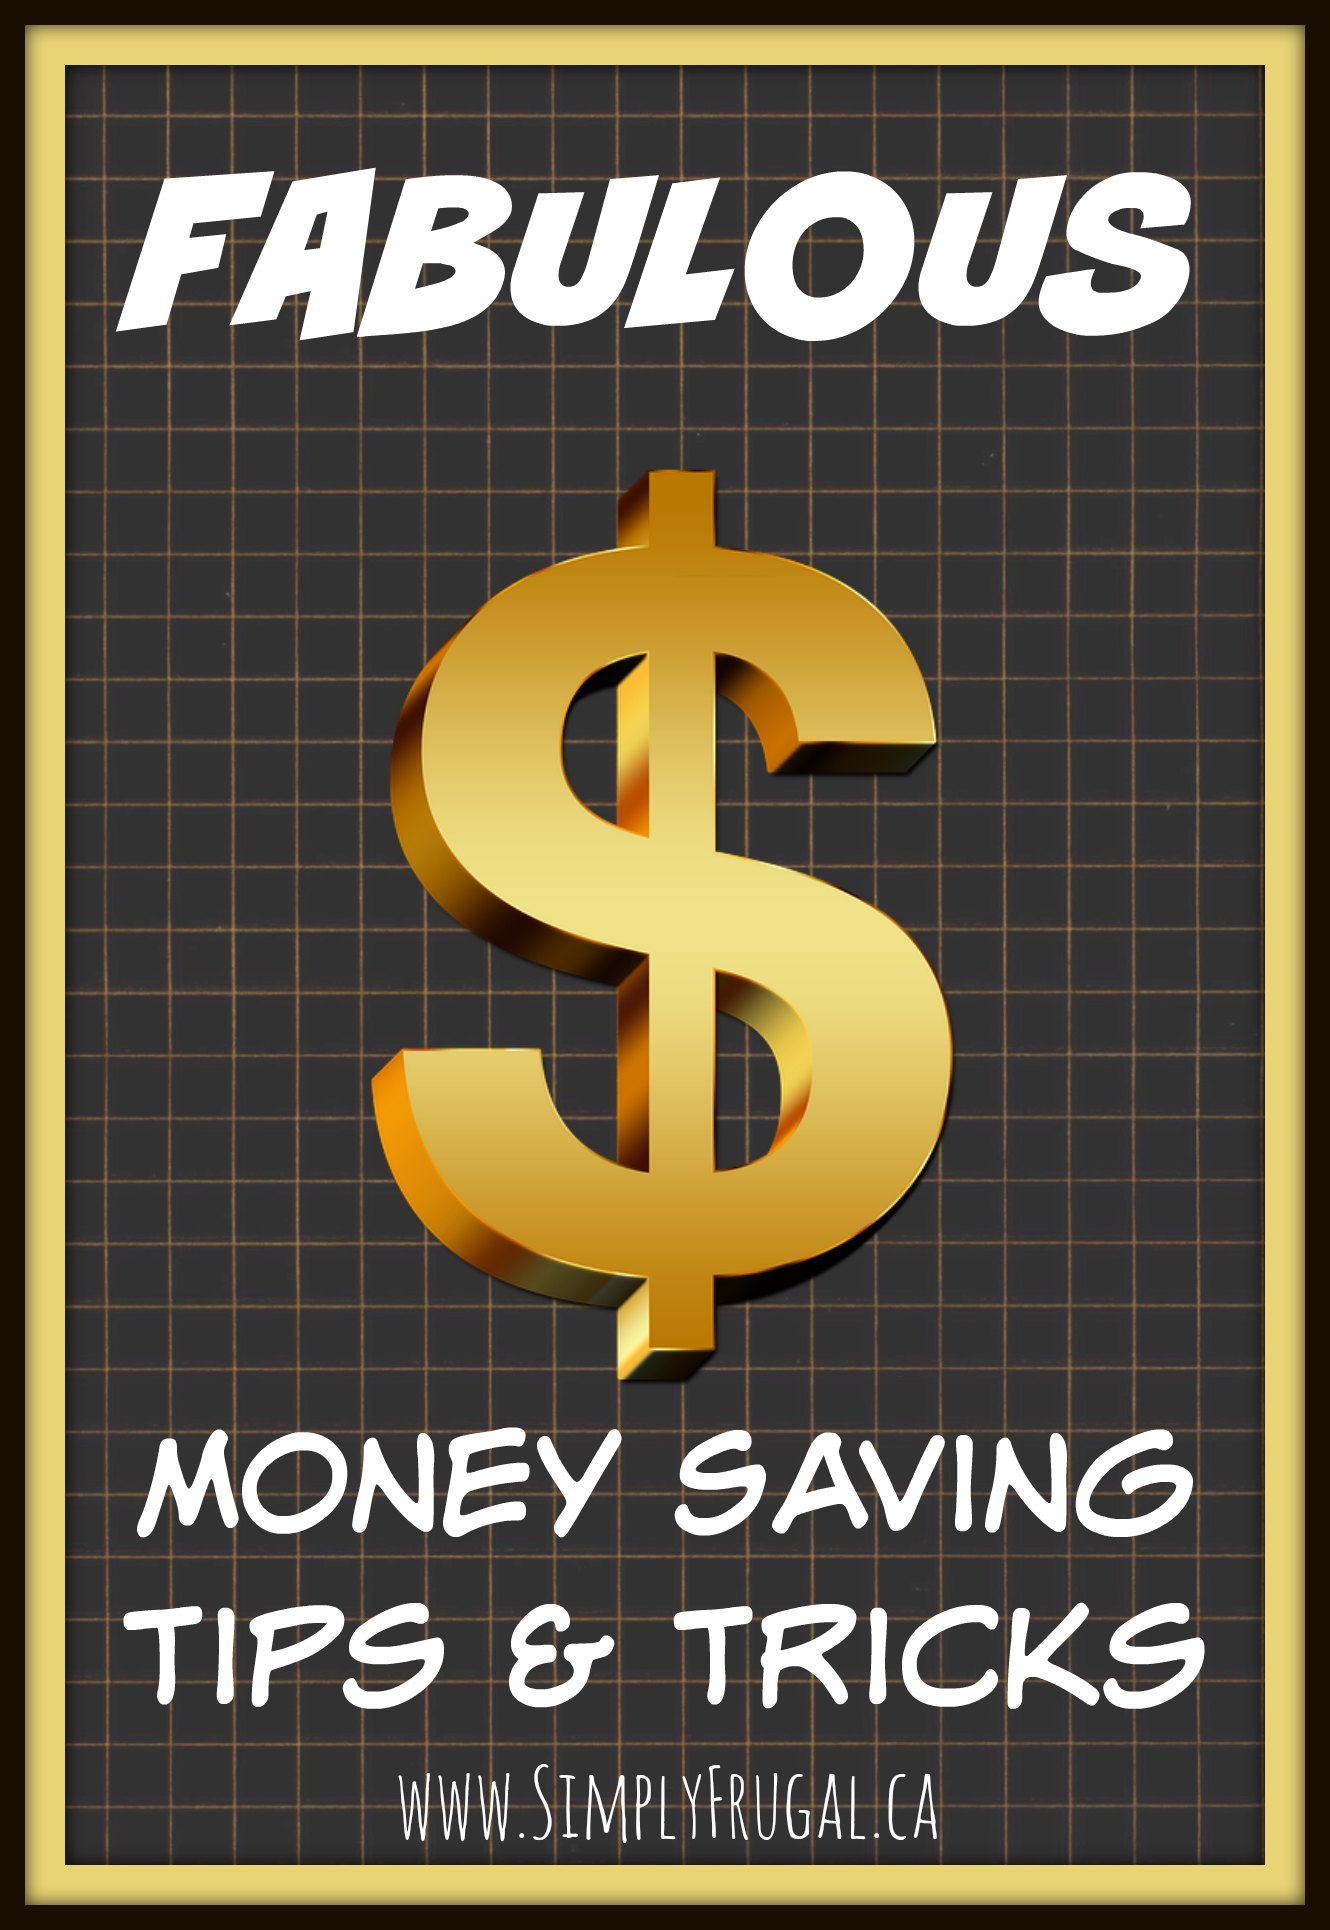 Money saving tips & tricks